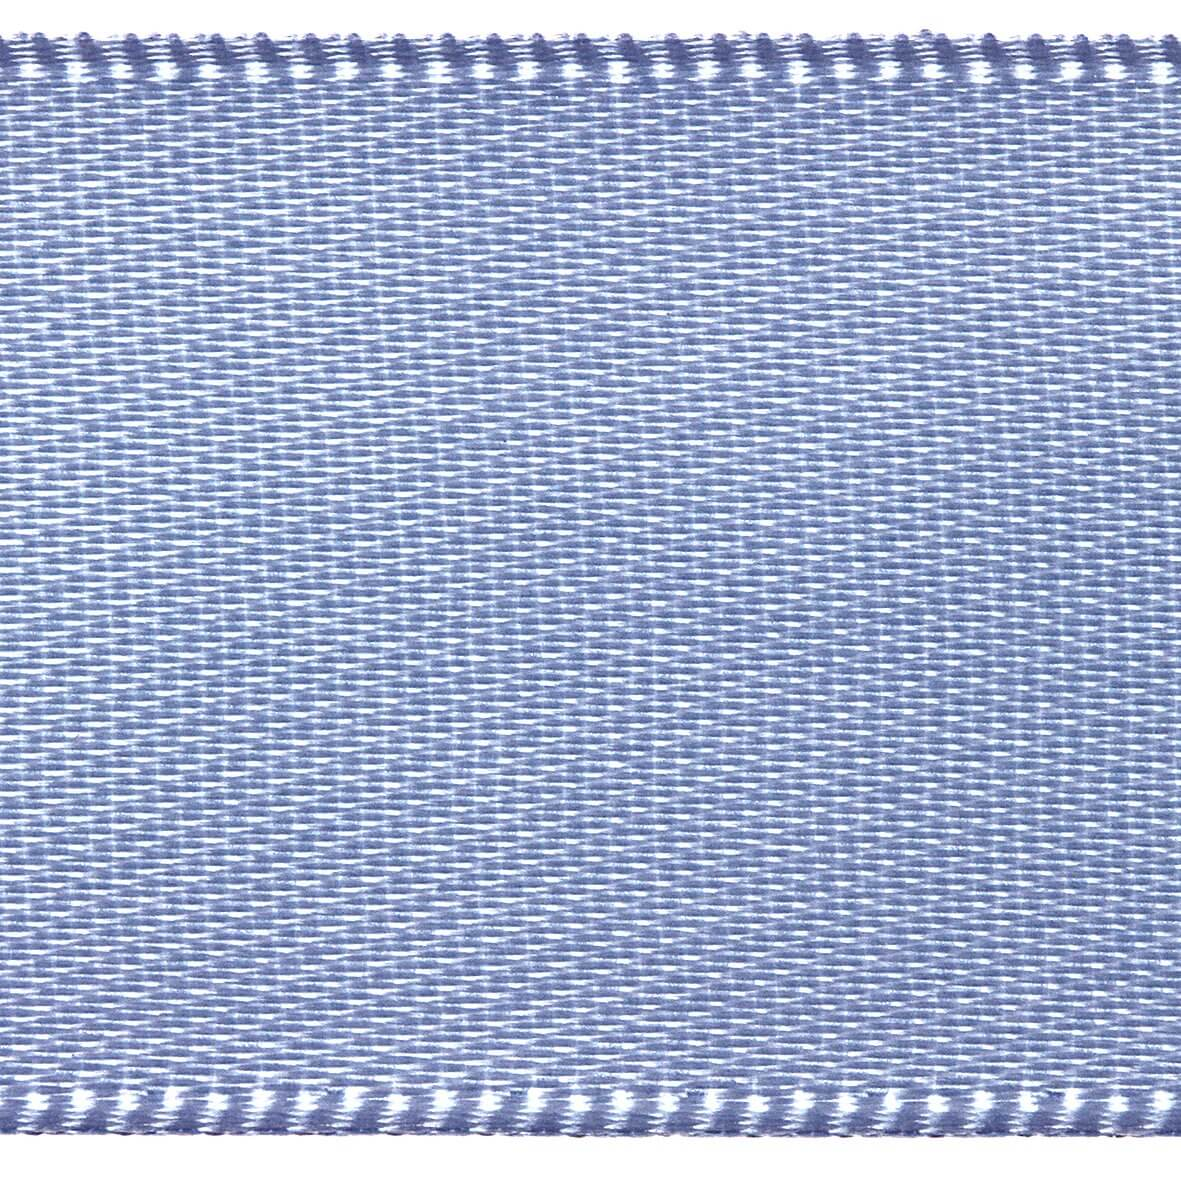 Wedgwood Blue Club Green 15mm Double Faced Satin Ribbon